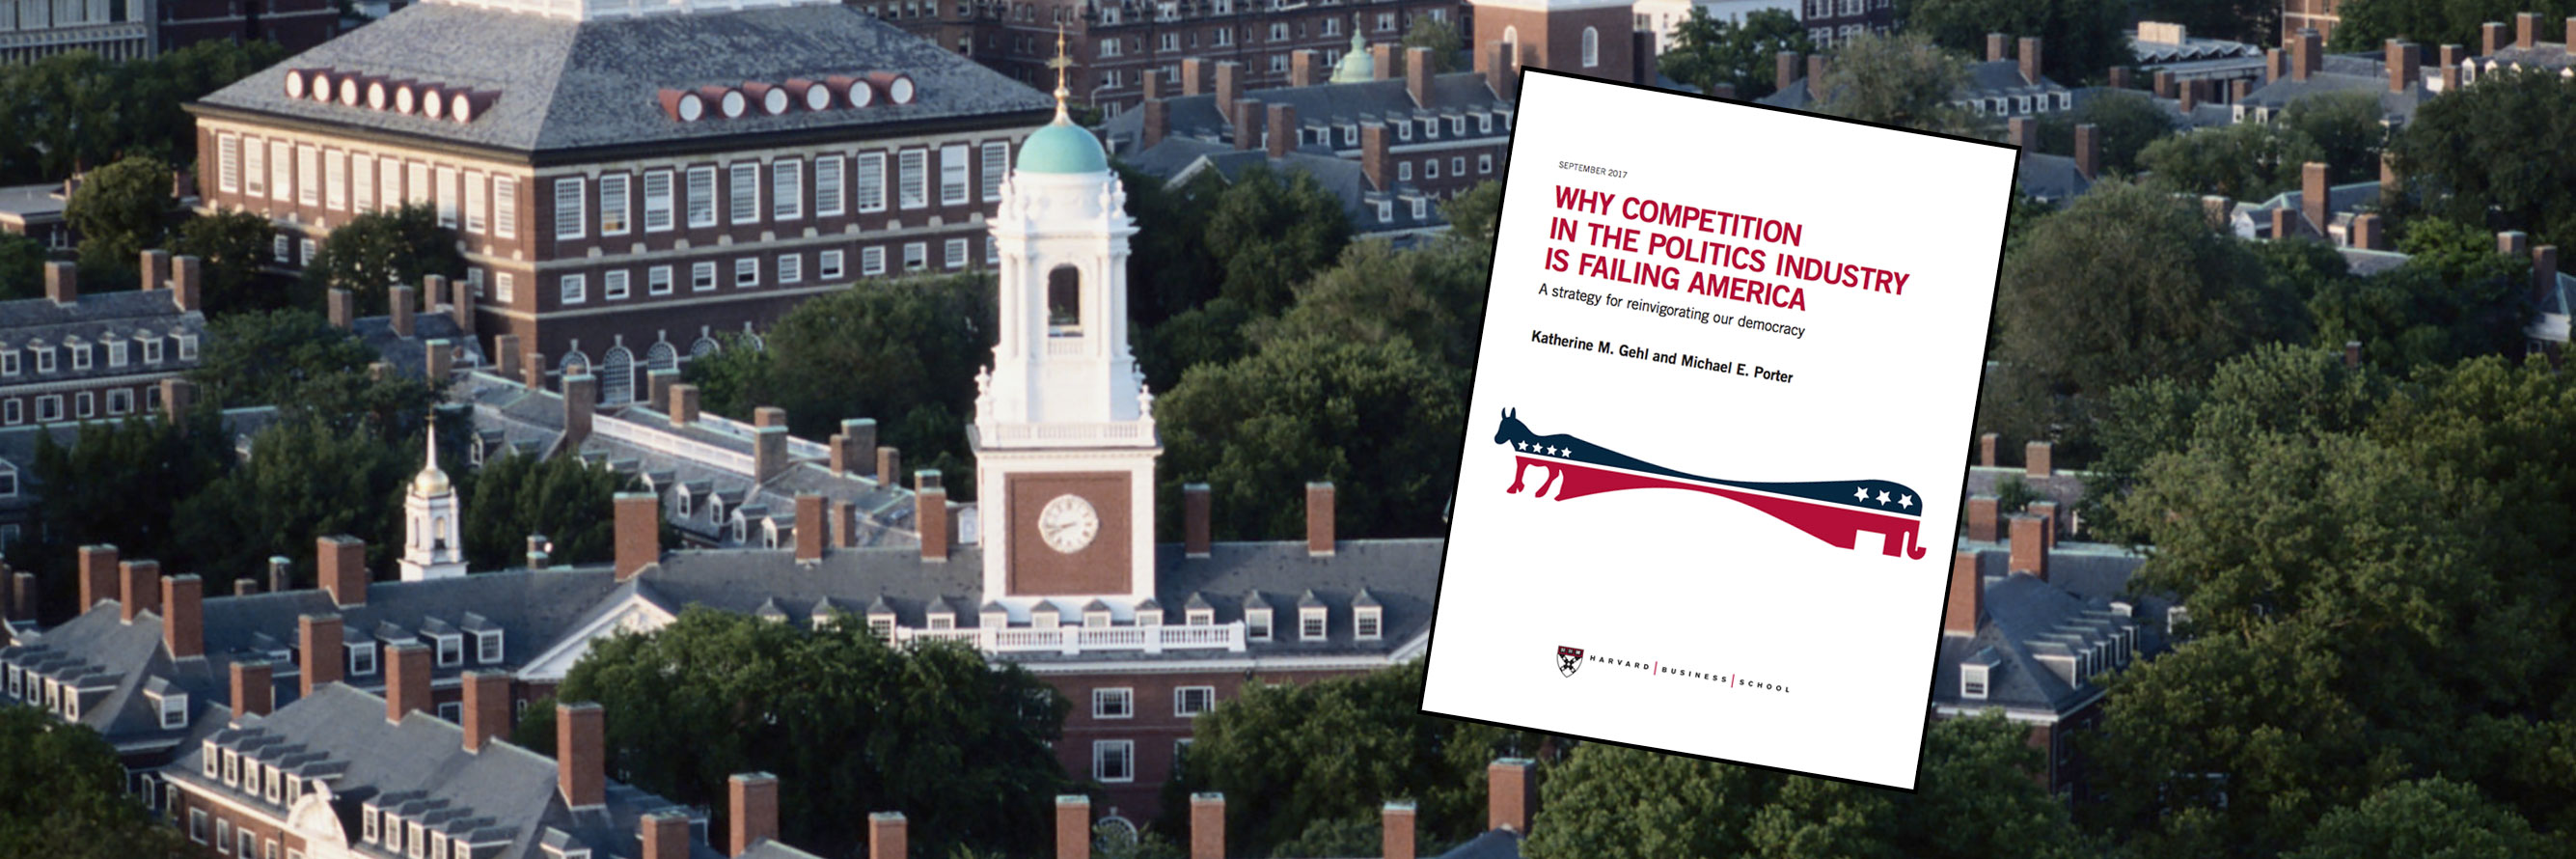 Harvard Business School report highlights ranked choice voting among reforms